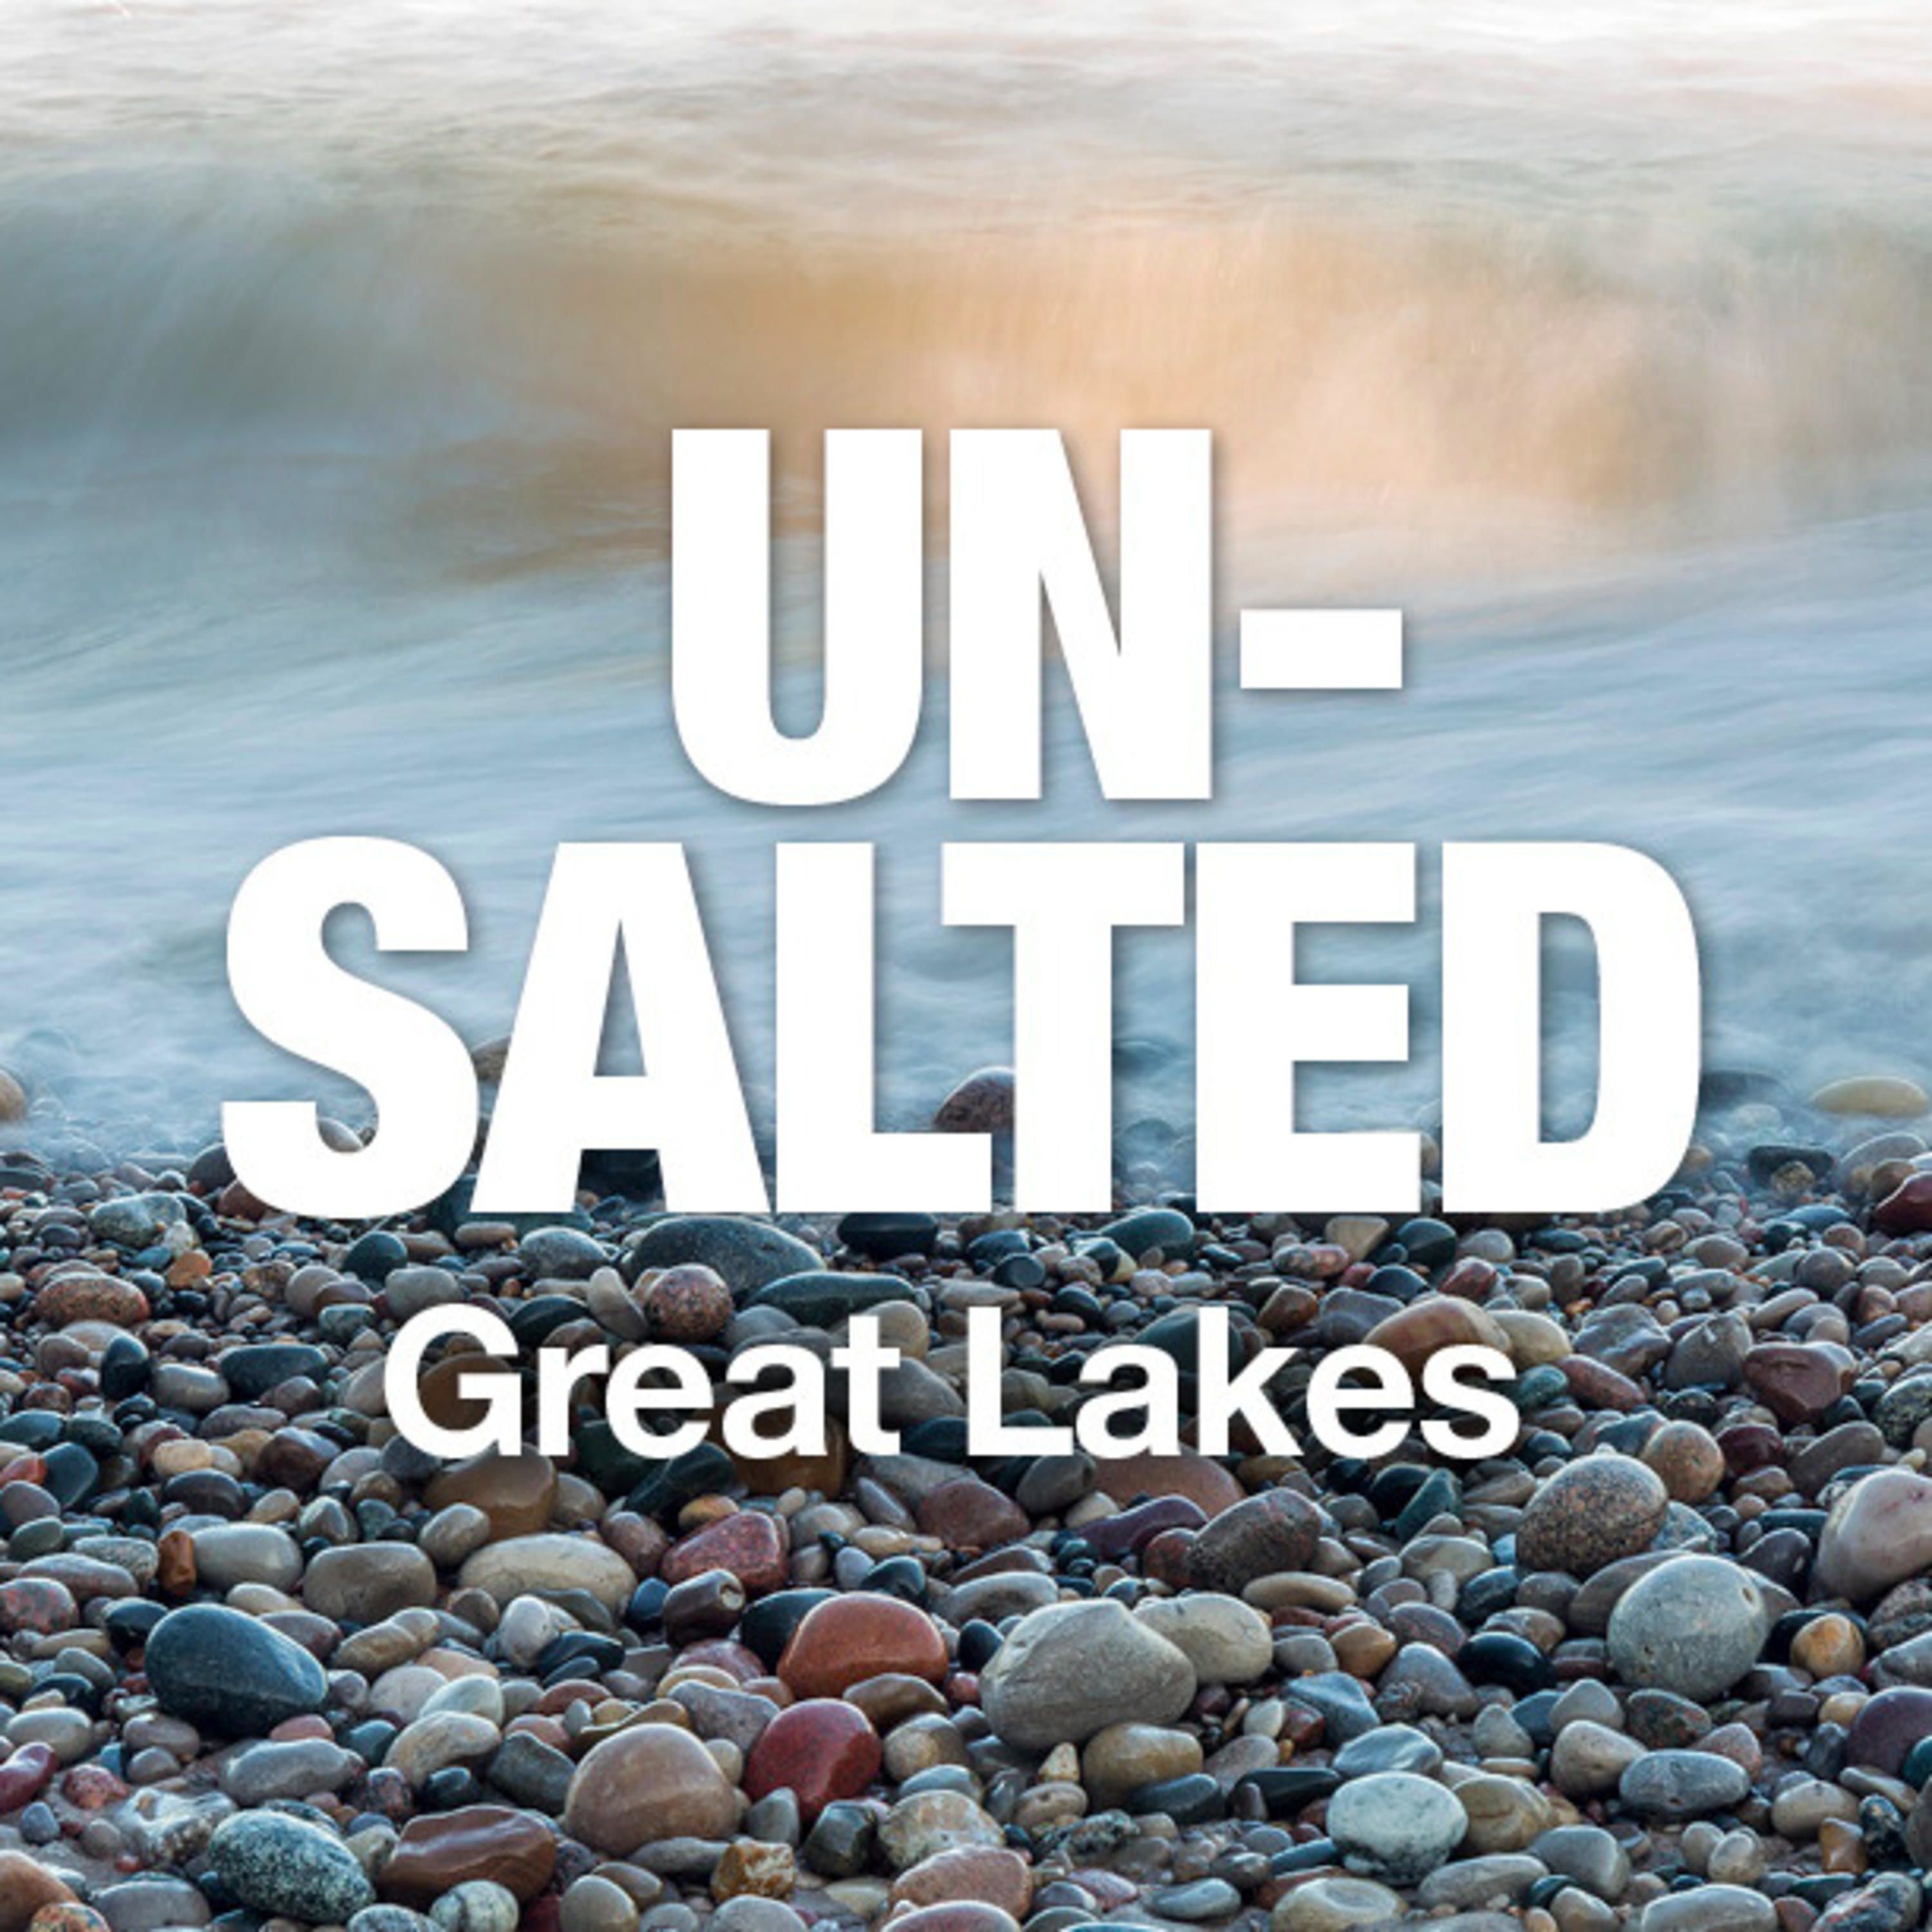 Don't be a nurdle: Great Lakes plastics